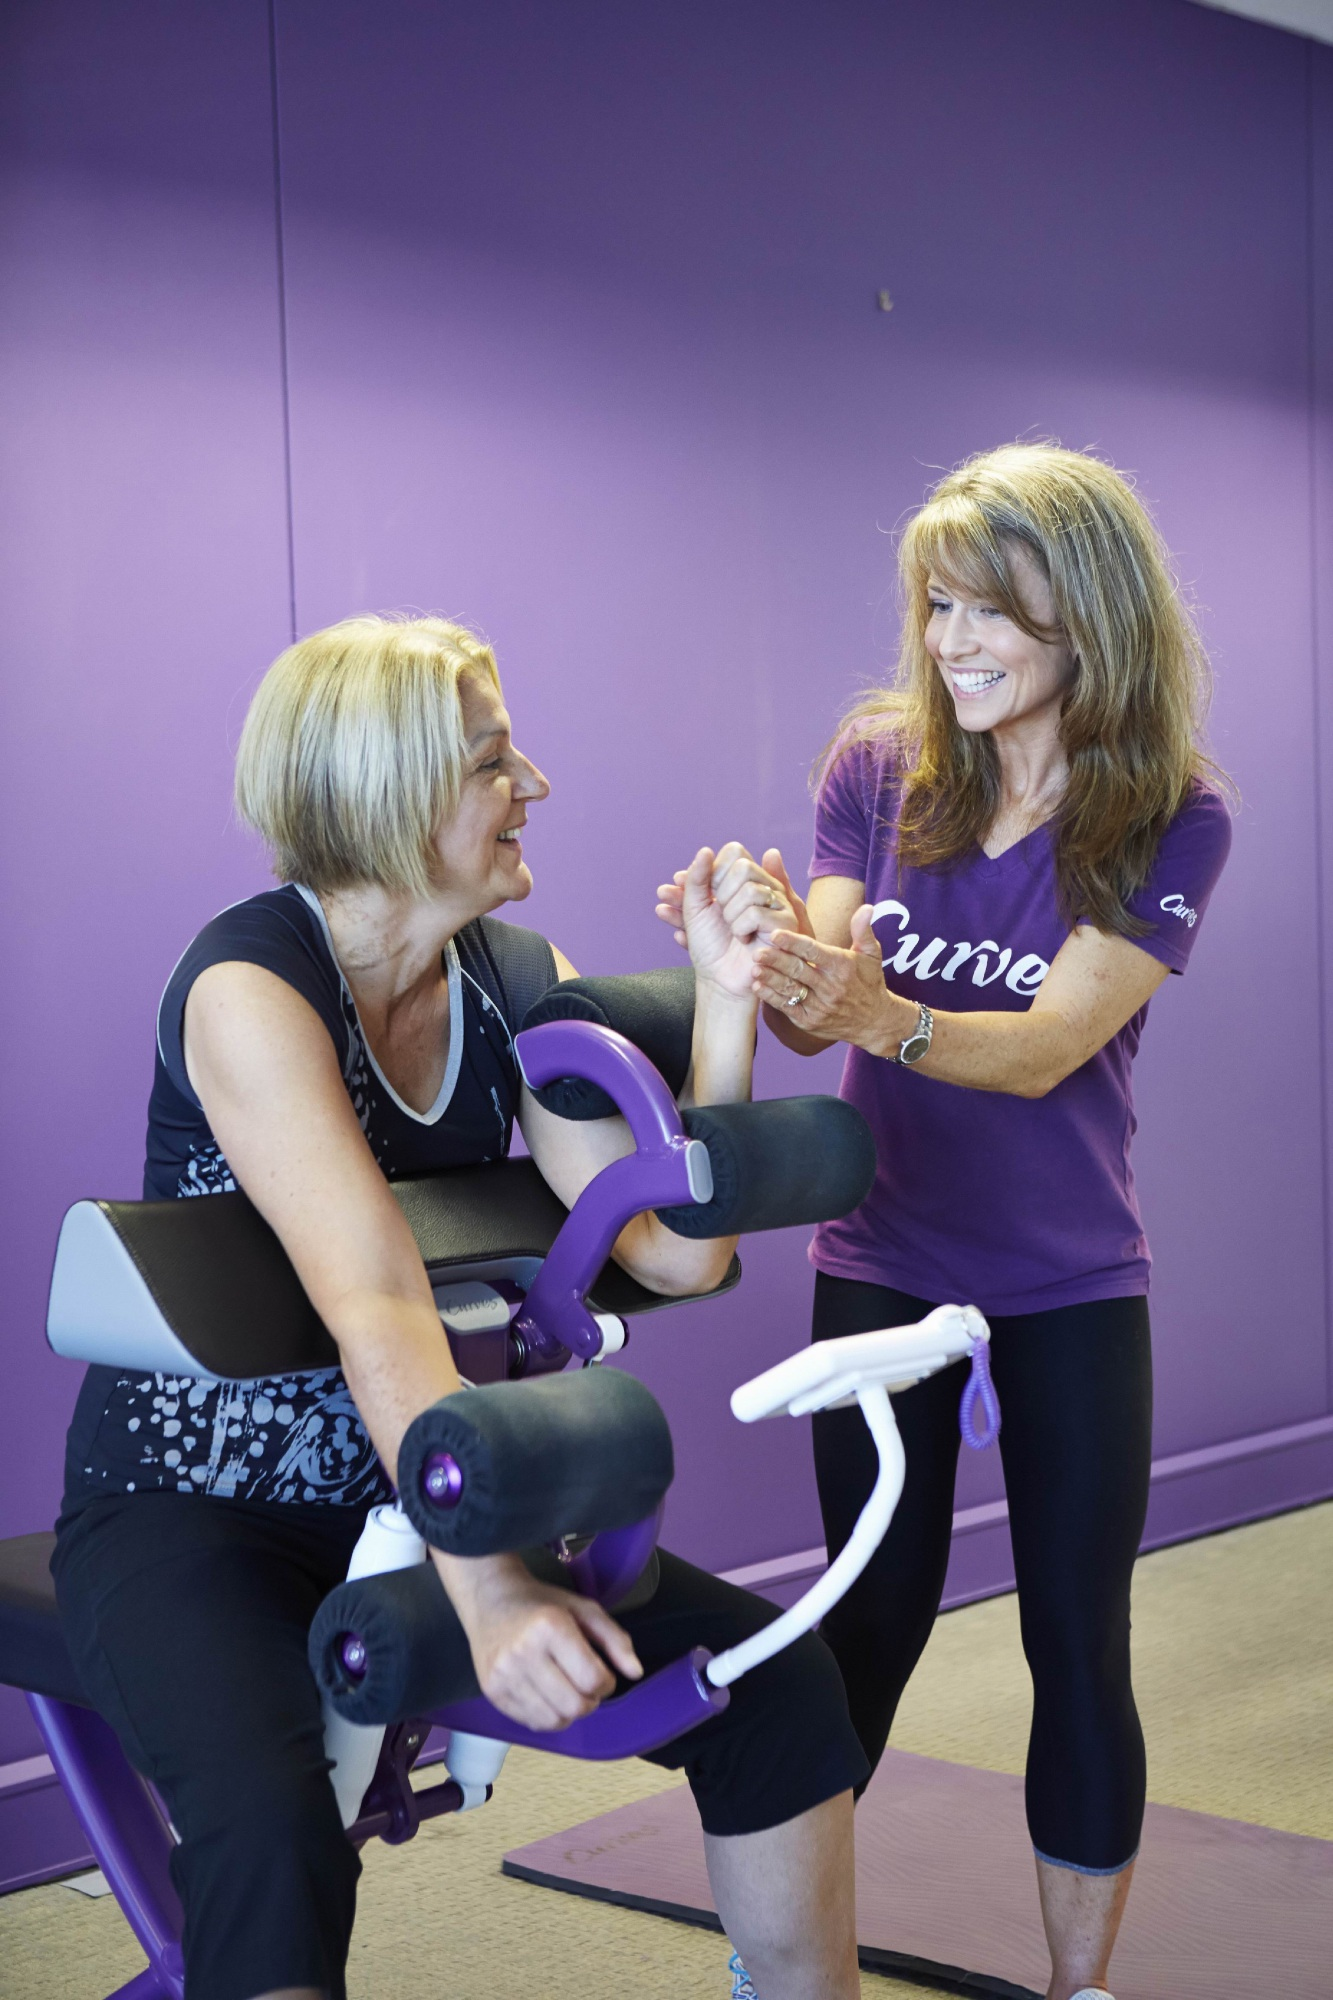 Curves Heathridge helps women get fit faster